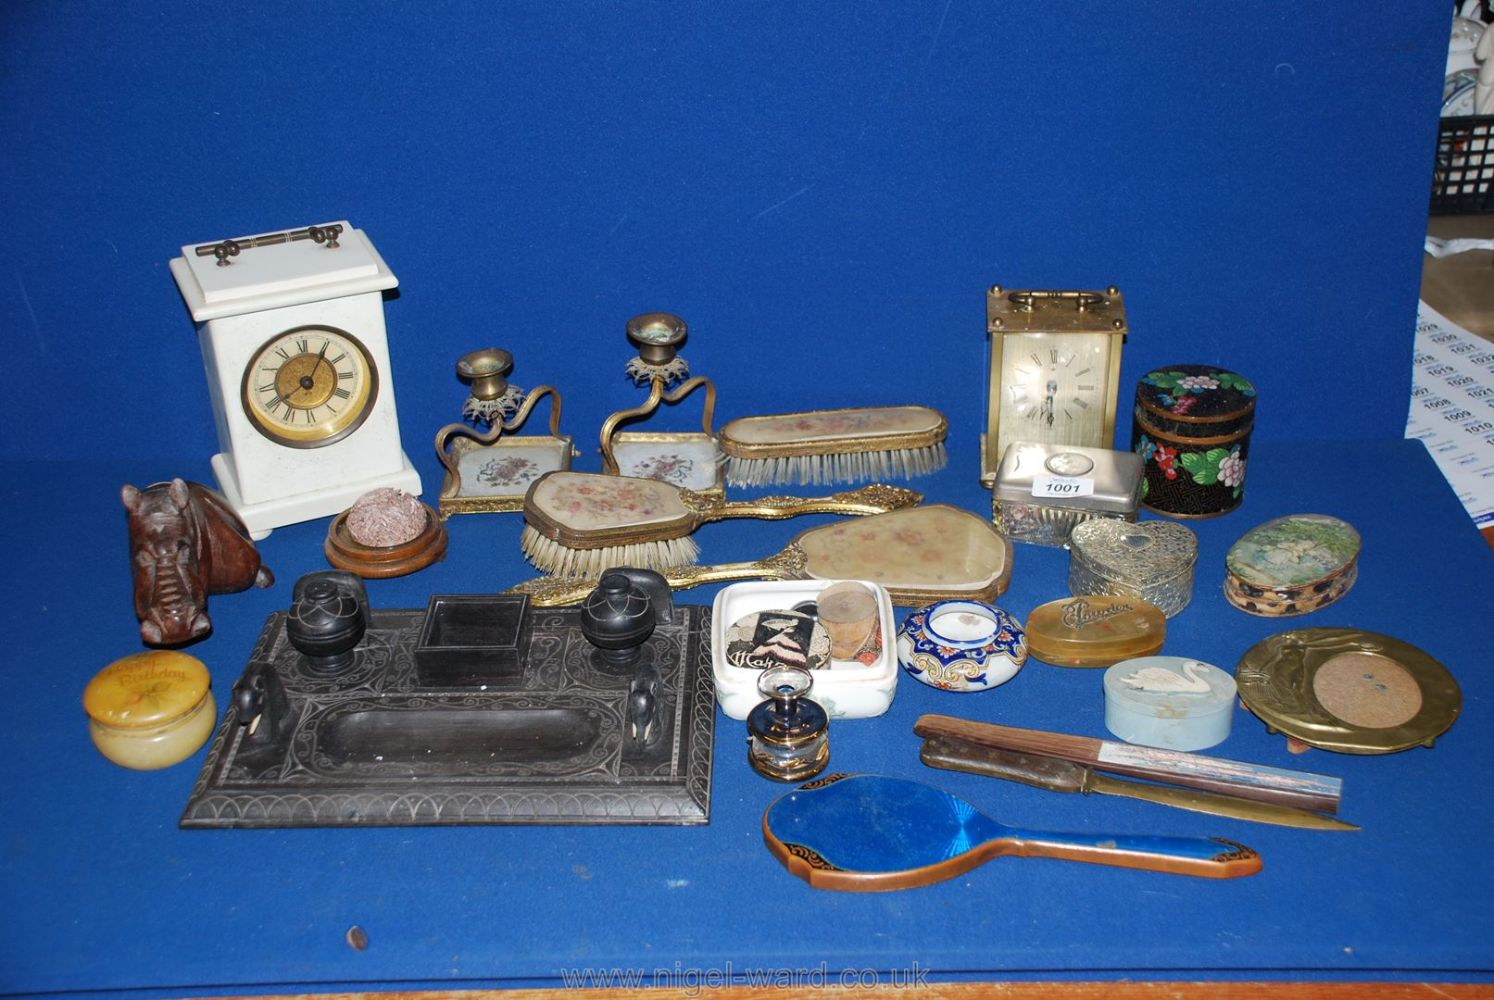 Online Only October Auction of Miscellaneous Objets d'Art, Collectables, Porcelain, Glass, Antique & Country Furniture